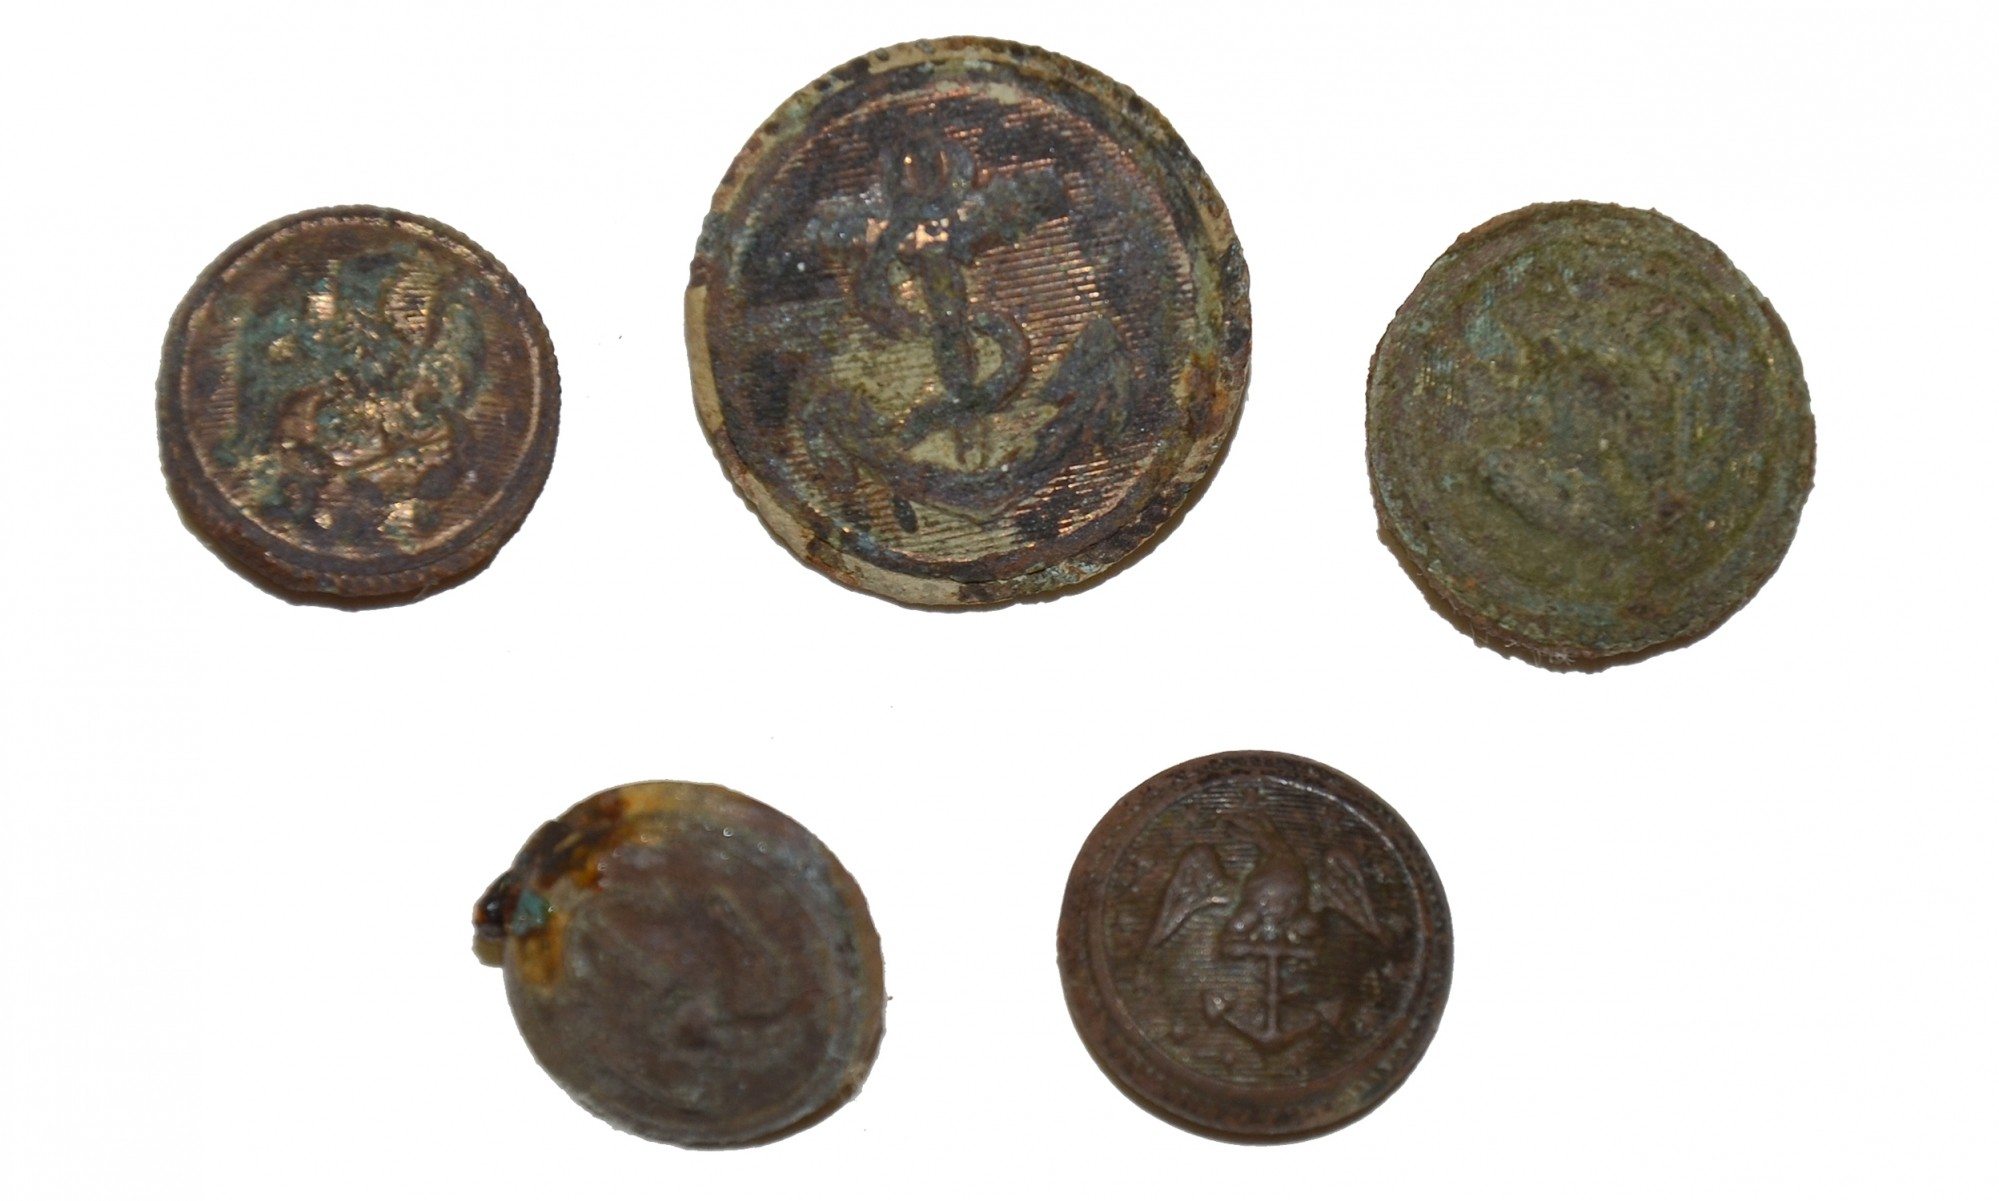 GROUP OF NAVAL BUTTONS RECOVERED FROM BERKLEY PLANTATION